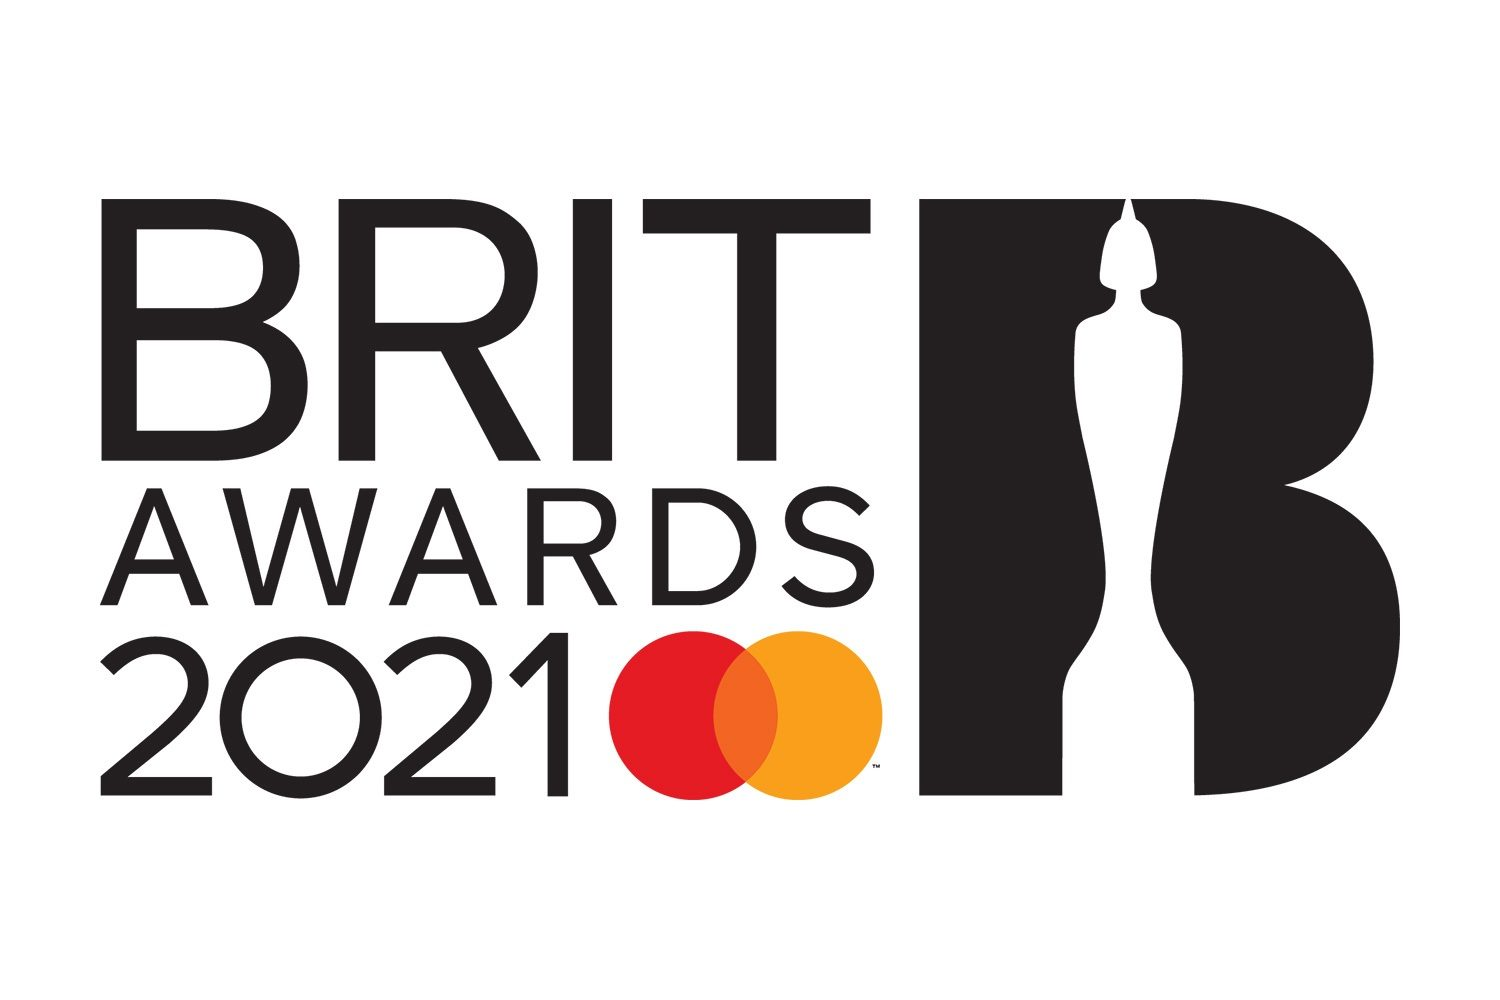 The Brit Awards are going to be held in May next year instead of February